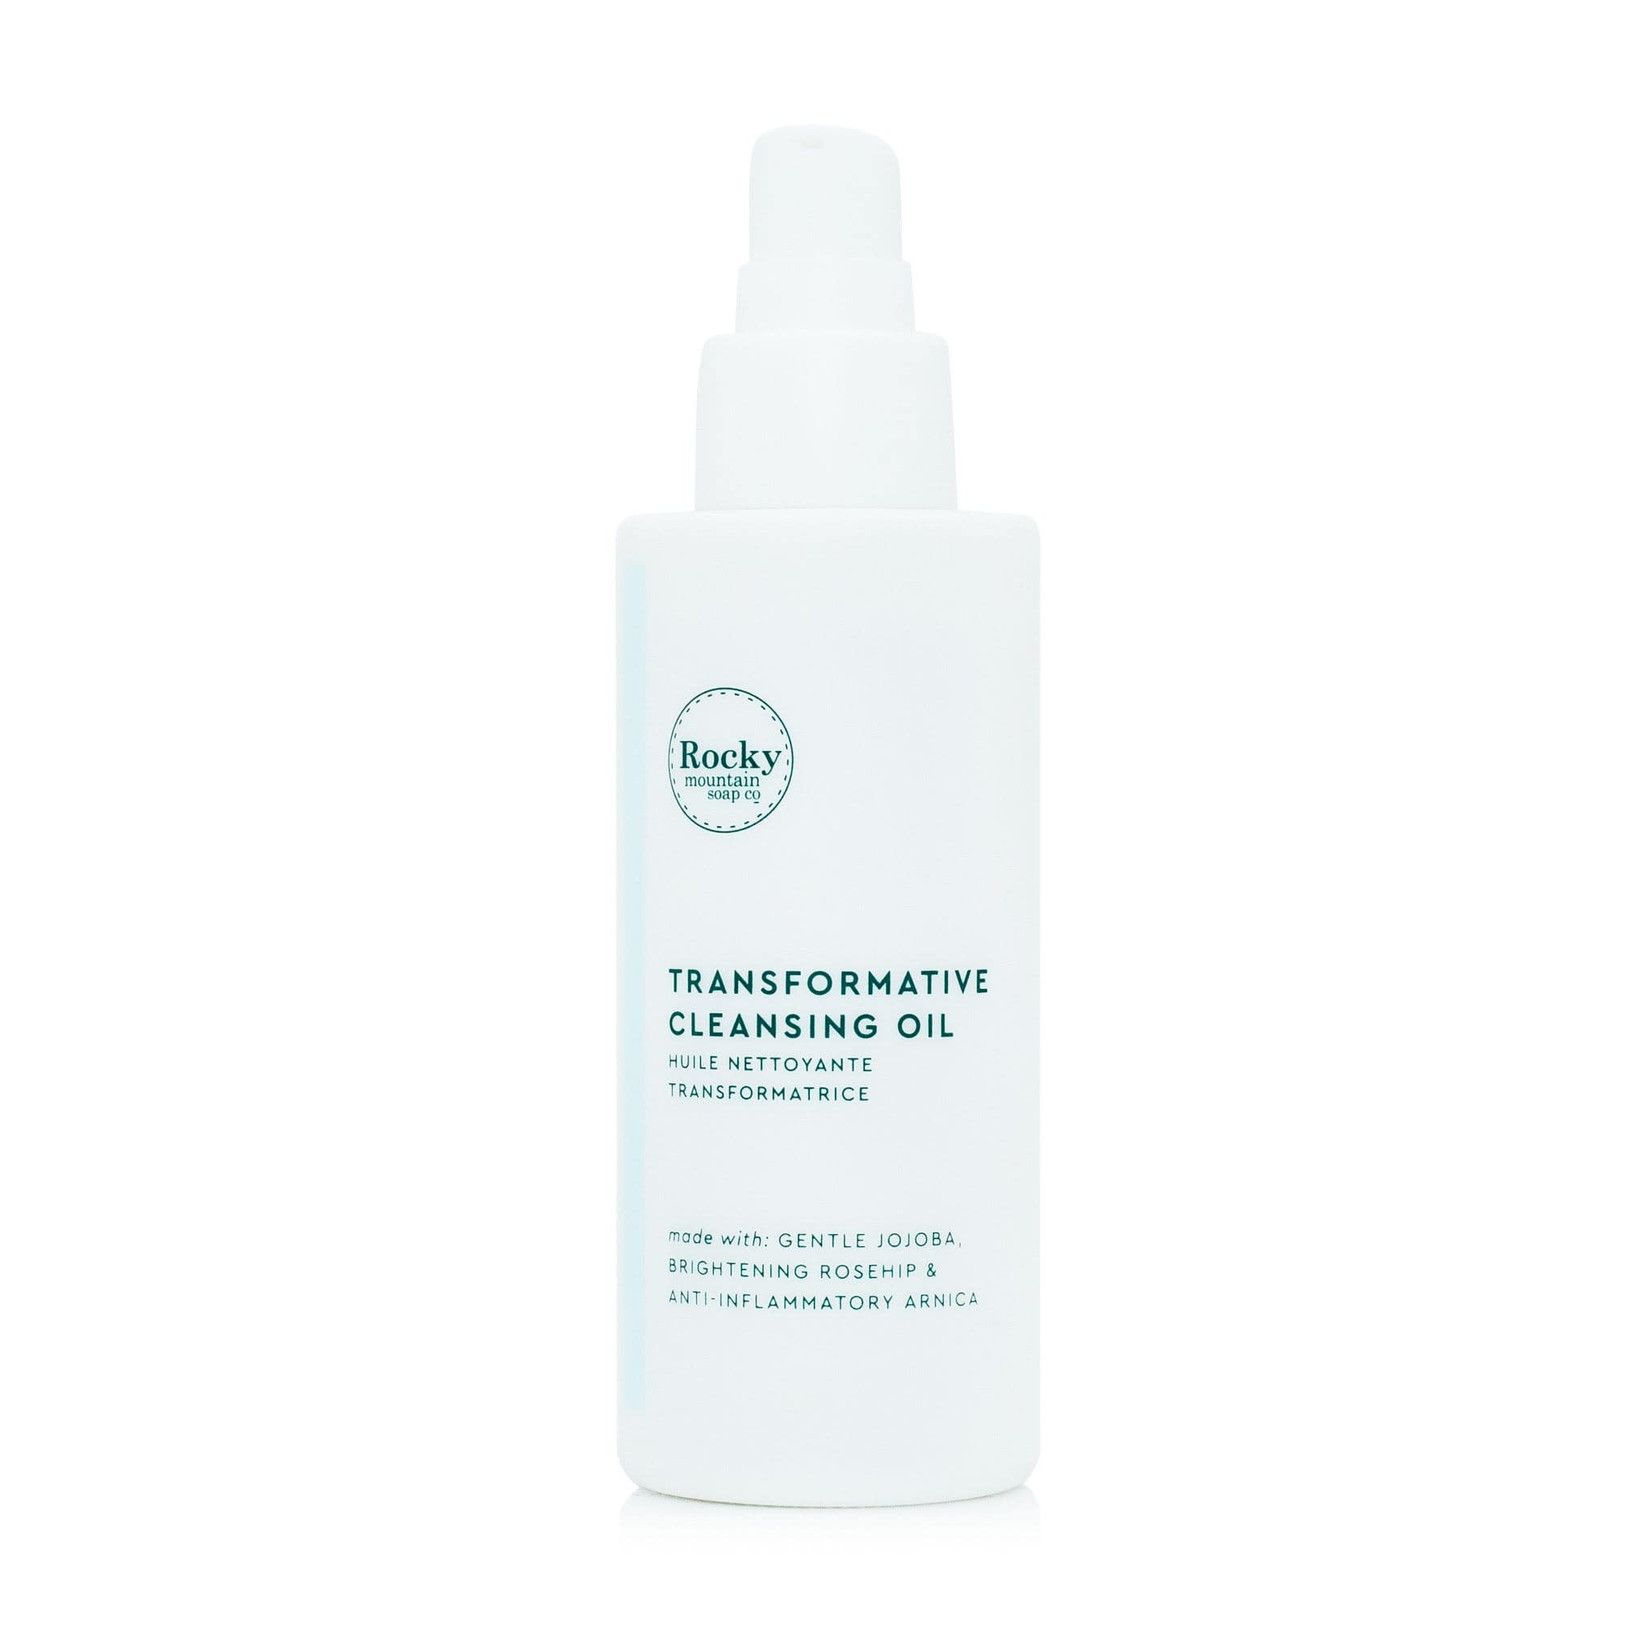 ROCKY MOUNTAIN SOAP CO. TRANSFORMATIVE CLEANSING OIL